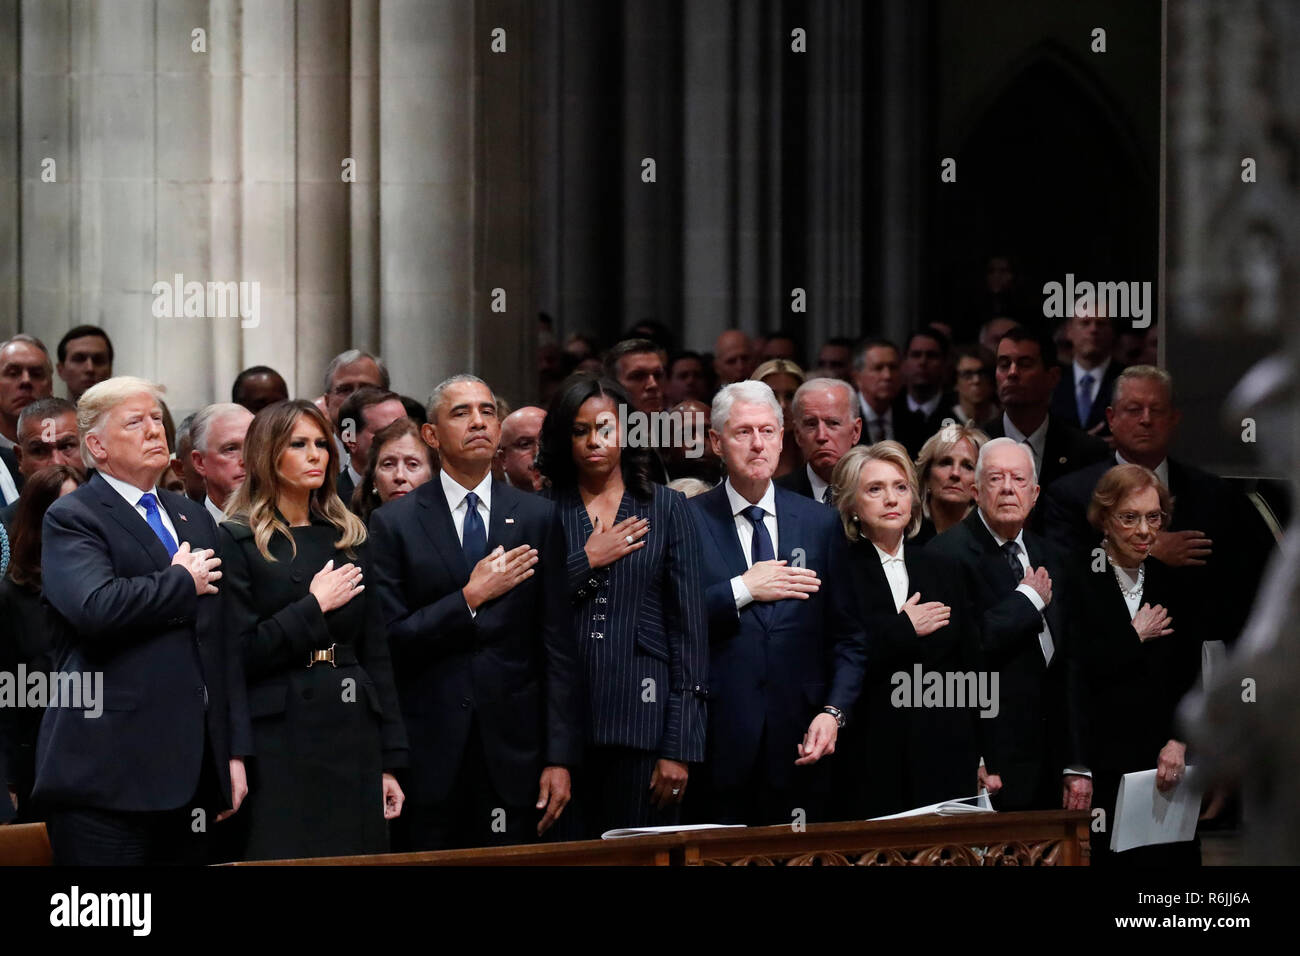 From left, President Donald Trump, first lady Melania Trump, former President Barack Obama, former first lady Michelle Obama, former President Bill Clinton, former Secretary of State Hillary Clinton, and former President Jimmy Carter and former first lady Rosalynn Carter participate in the State Funeral for former President George H.W. Bush, at the National Cathedral, Wednesday, Dec. 5, 2018 in Washington.  Credit: Alex Brandon / Pool via CNP | usage worldwide Stock Photo